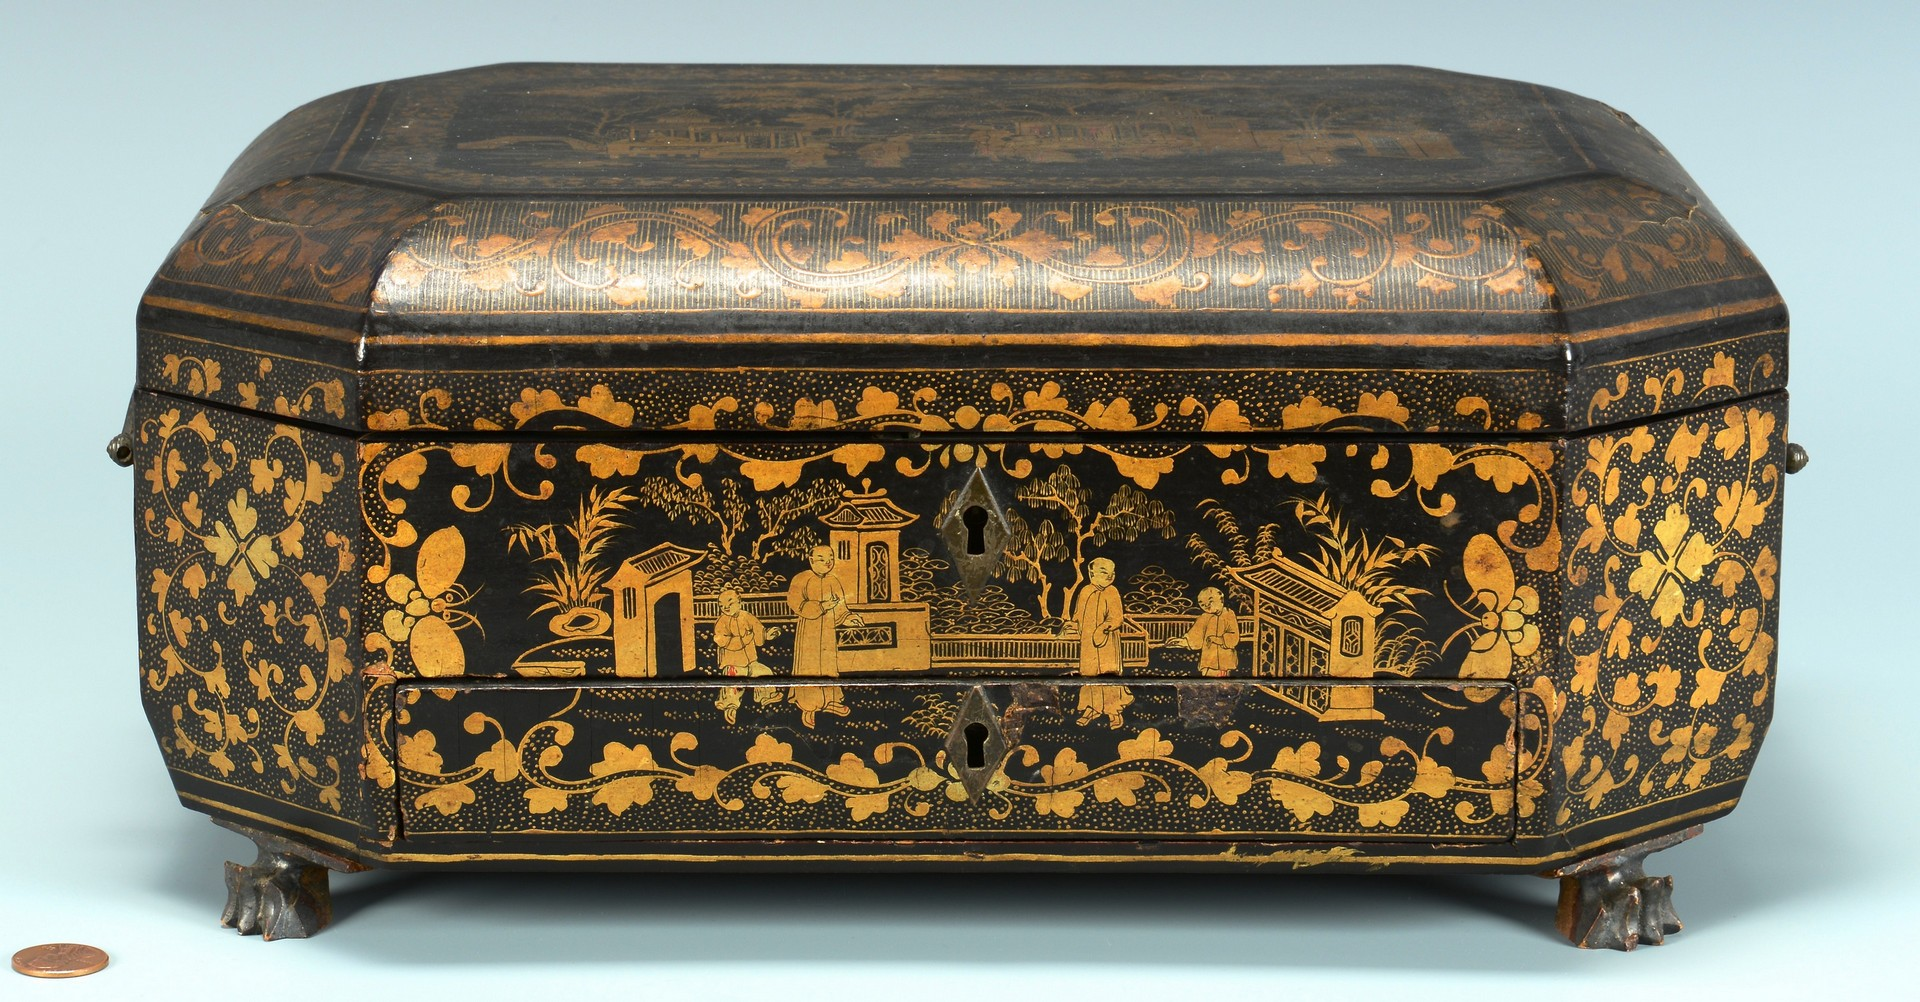 Lot 3383148: Chinoiserie Sewing Box with Contents